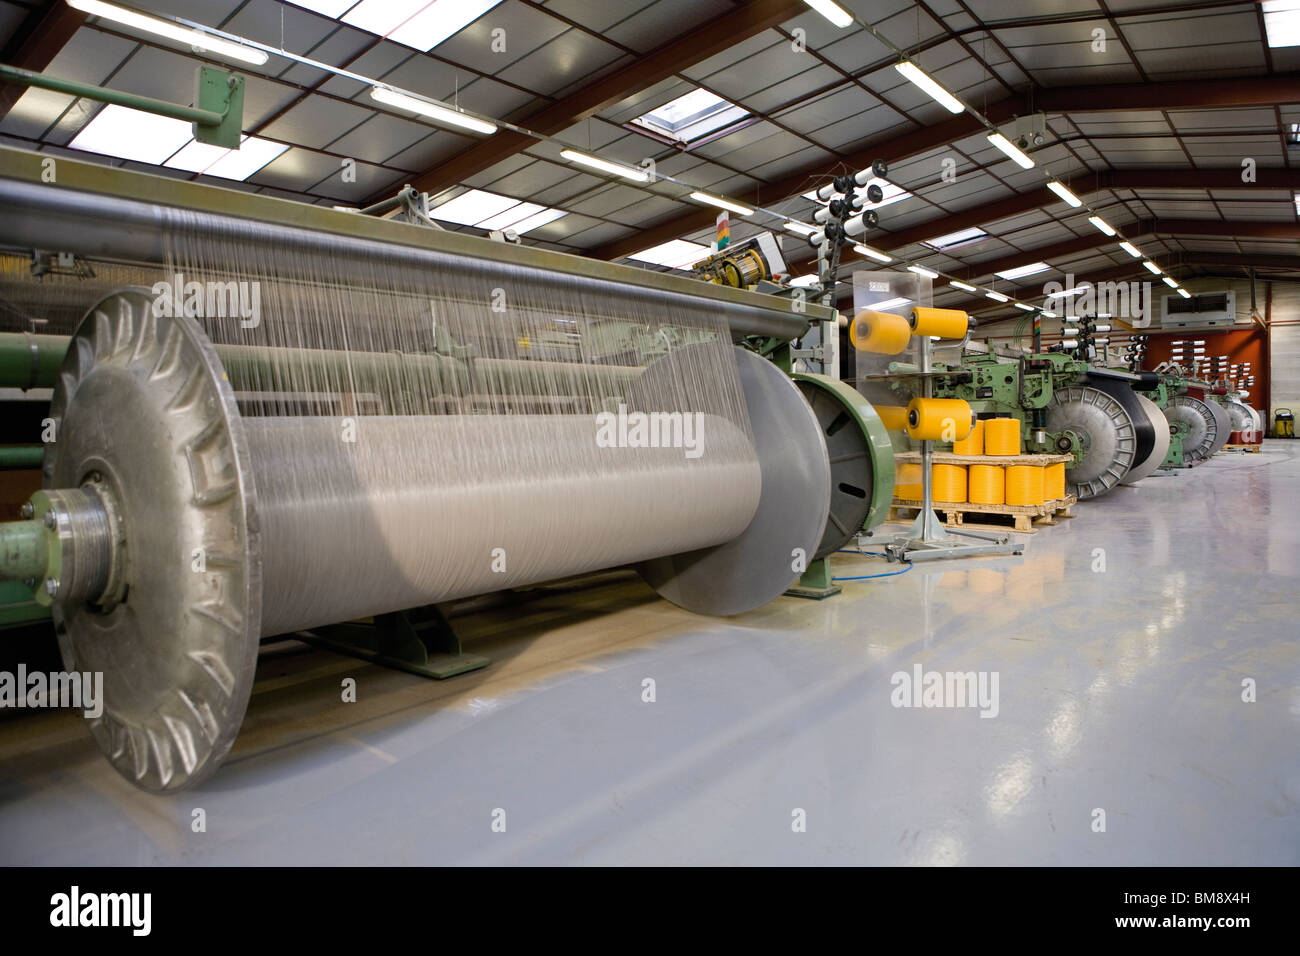 Fabric coating plant, weaving department, weaver's beam and loom - Stock Image